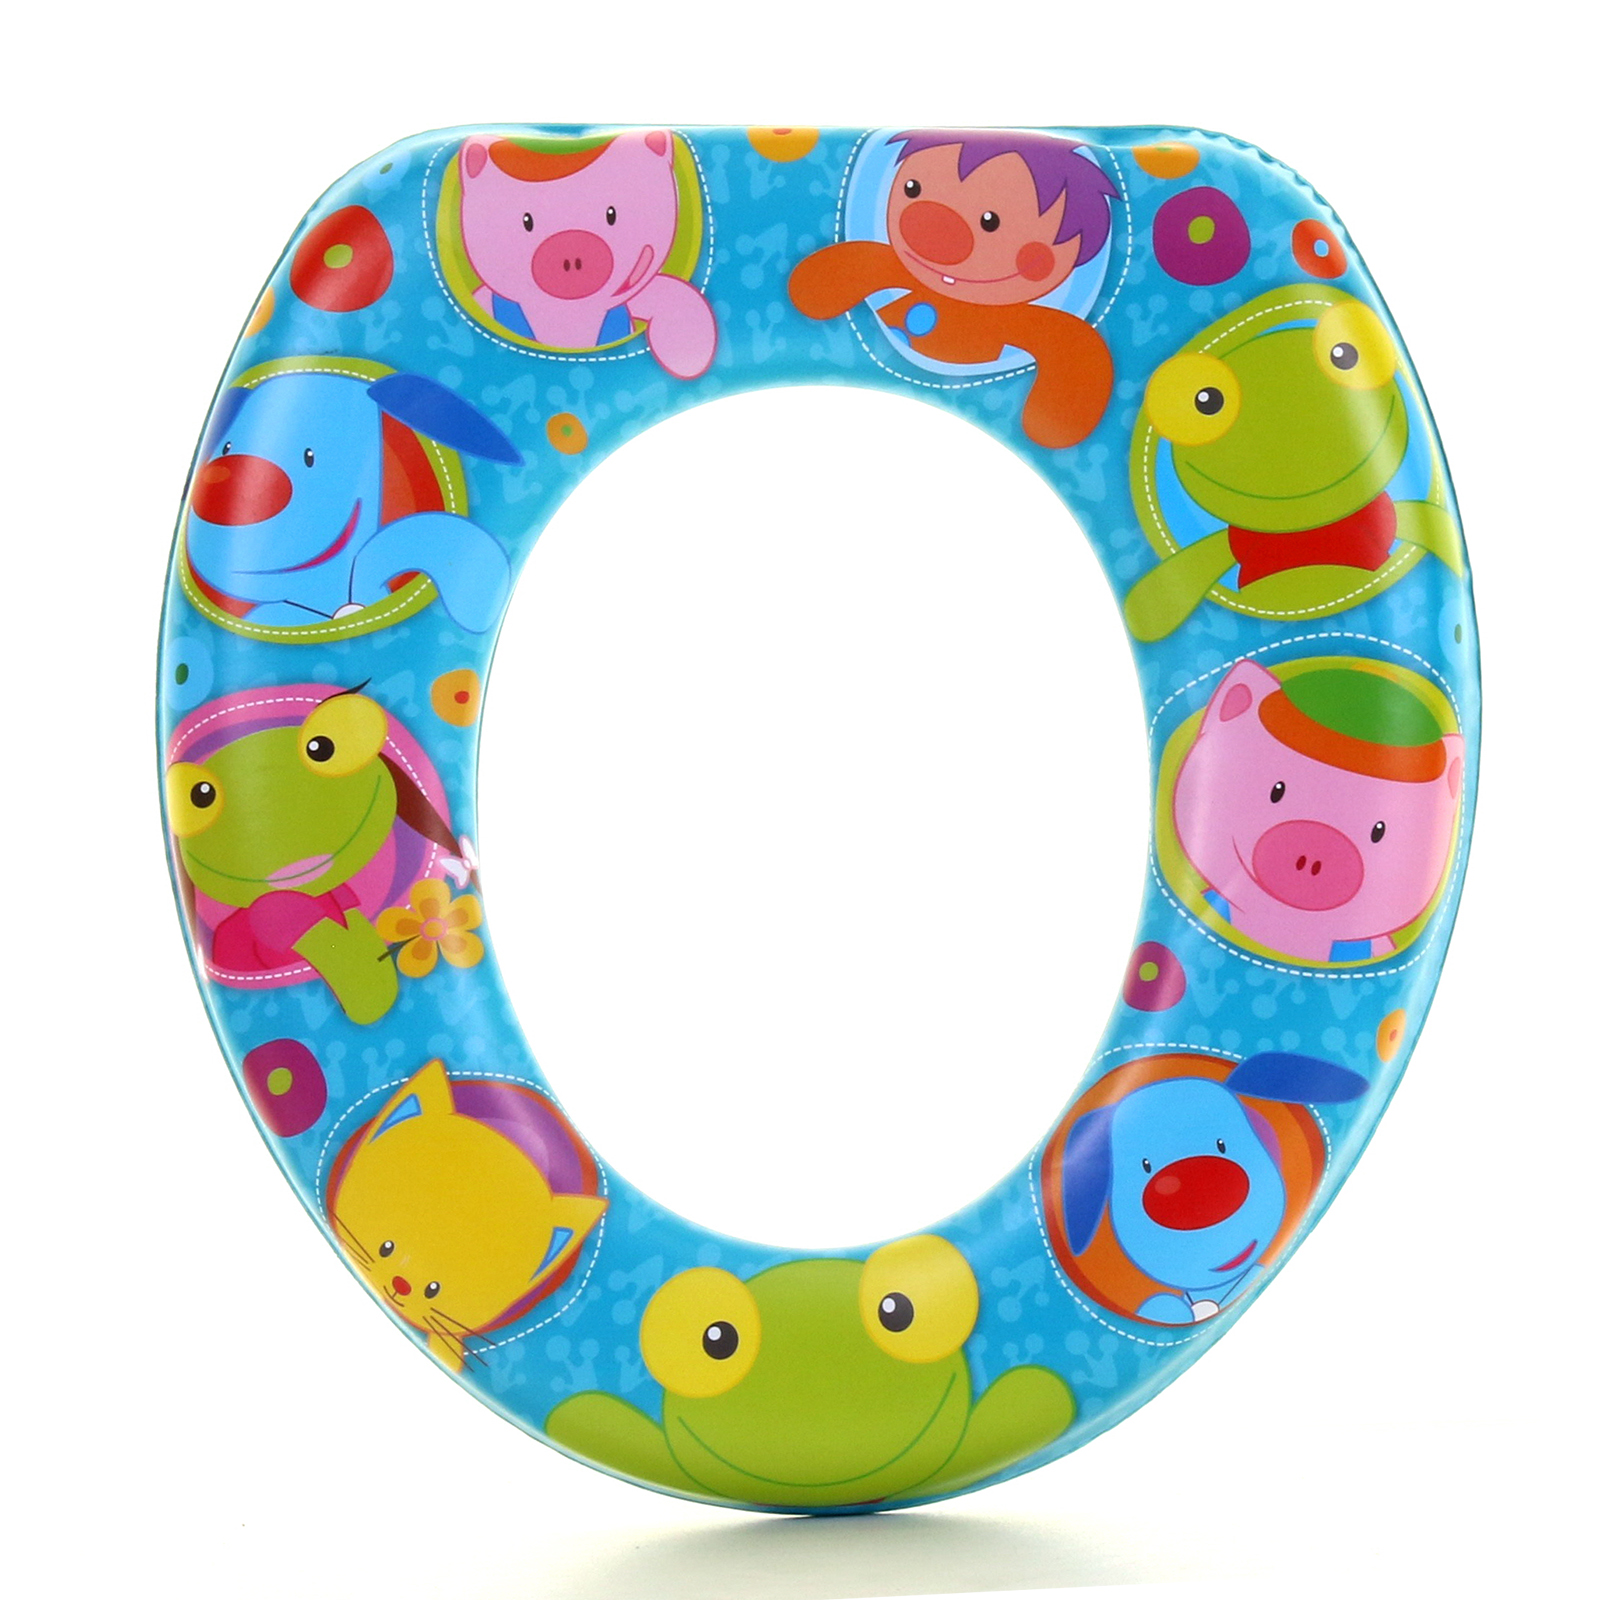 Marko Bathroom Potty Training Toilet Seat Thick Comfortable Foam Padded Baby Toddler Kids Child Bears